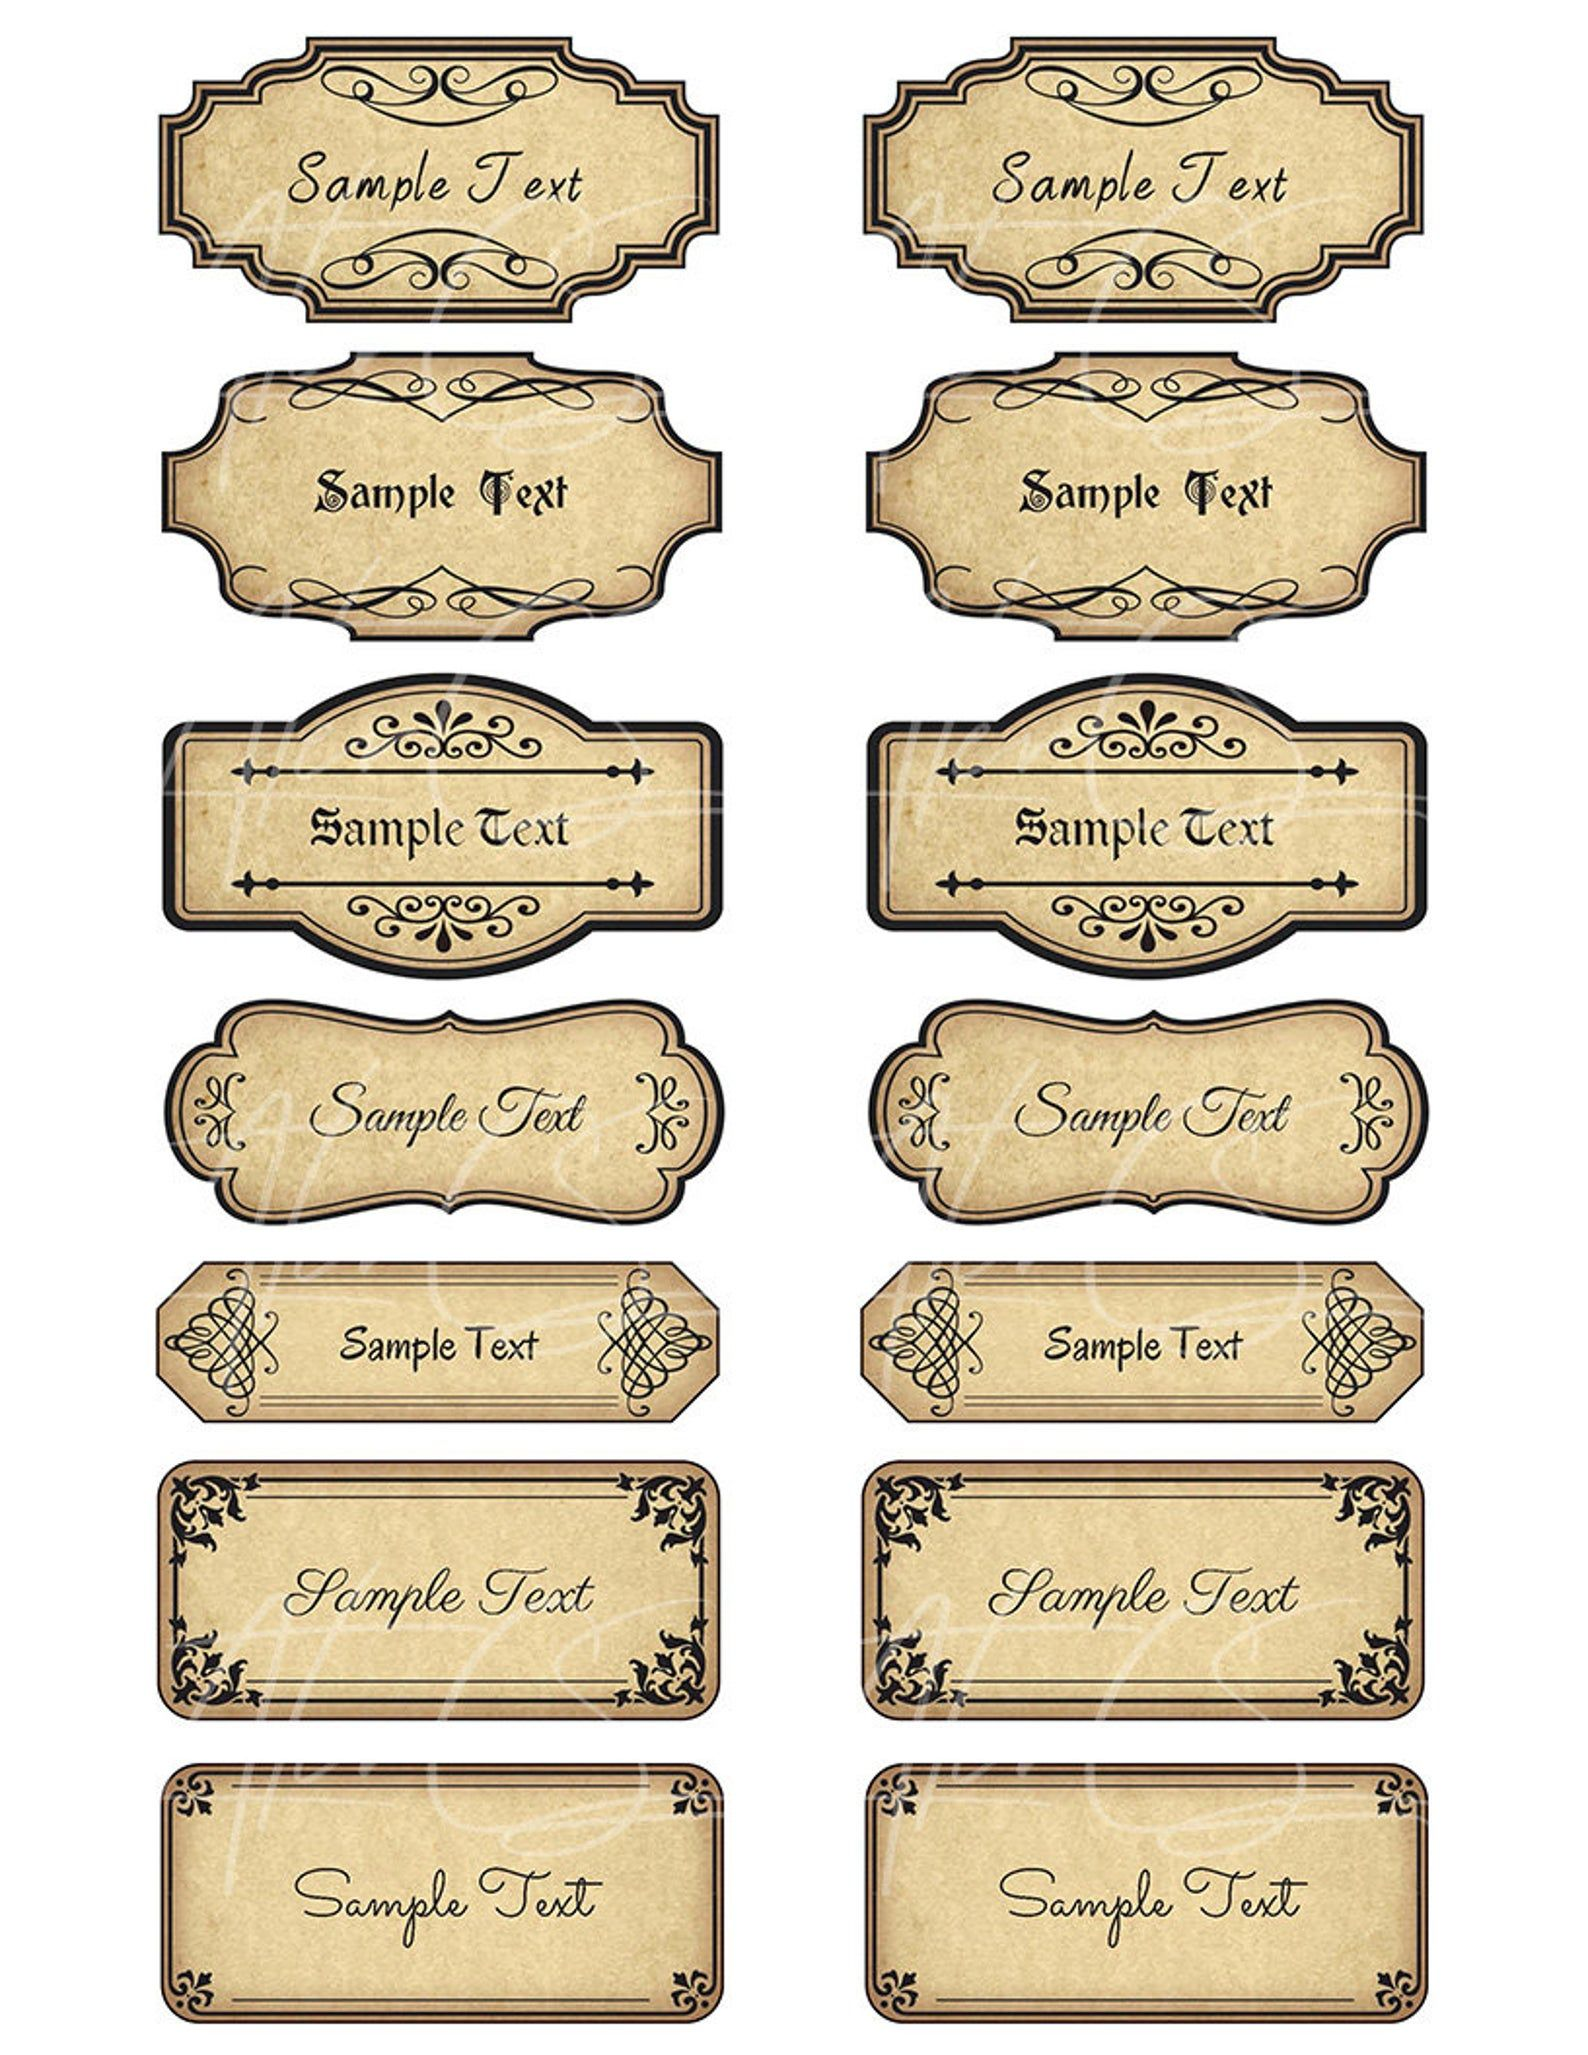 15 Printable Blank Vintage Apothecary Labels Set Editable Etsy In 2020 Apothecary Labels Labels Printables Free Vintage Labels Printables